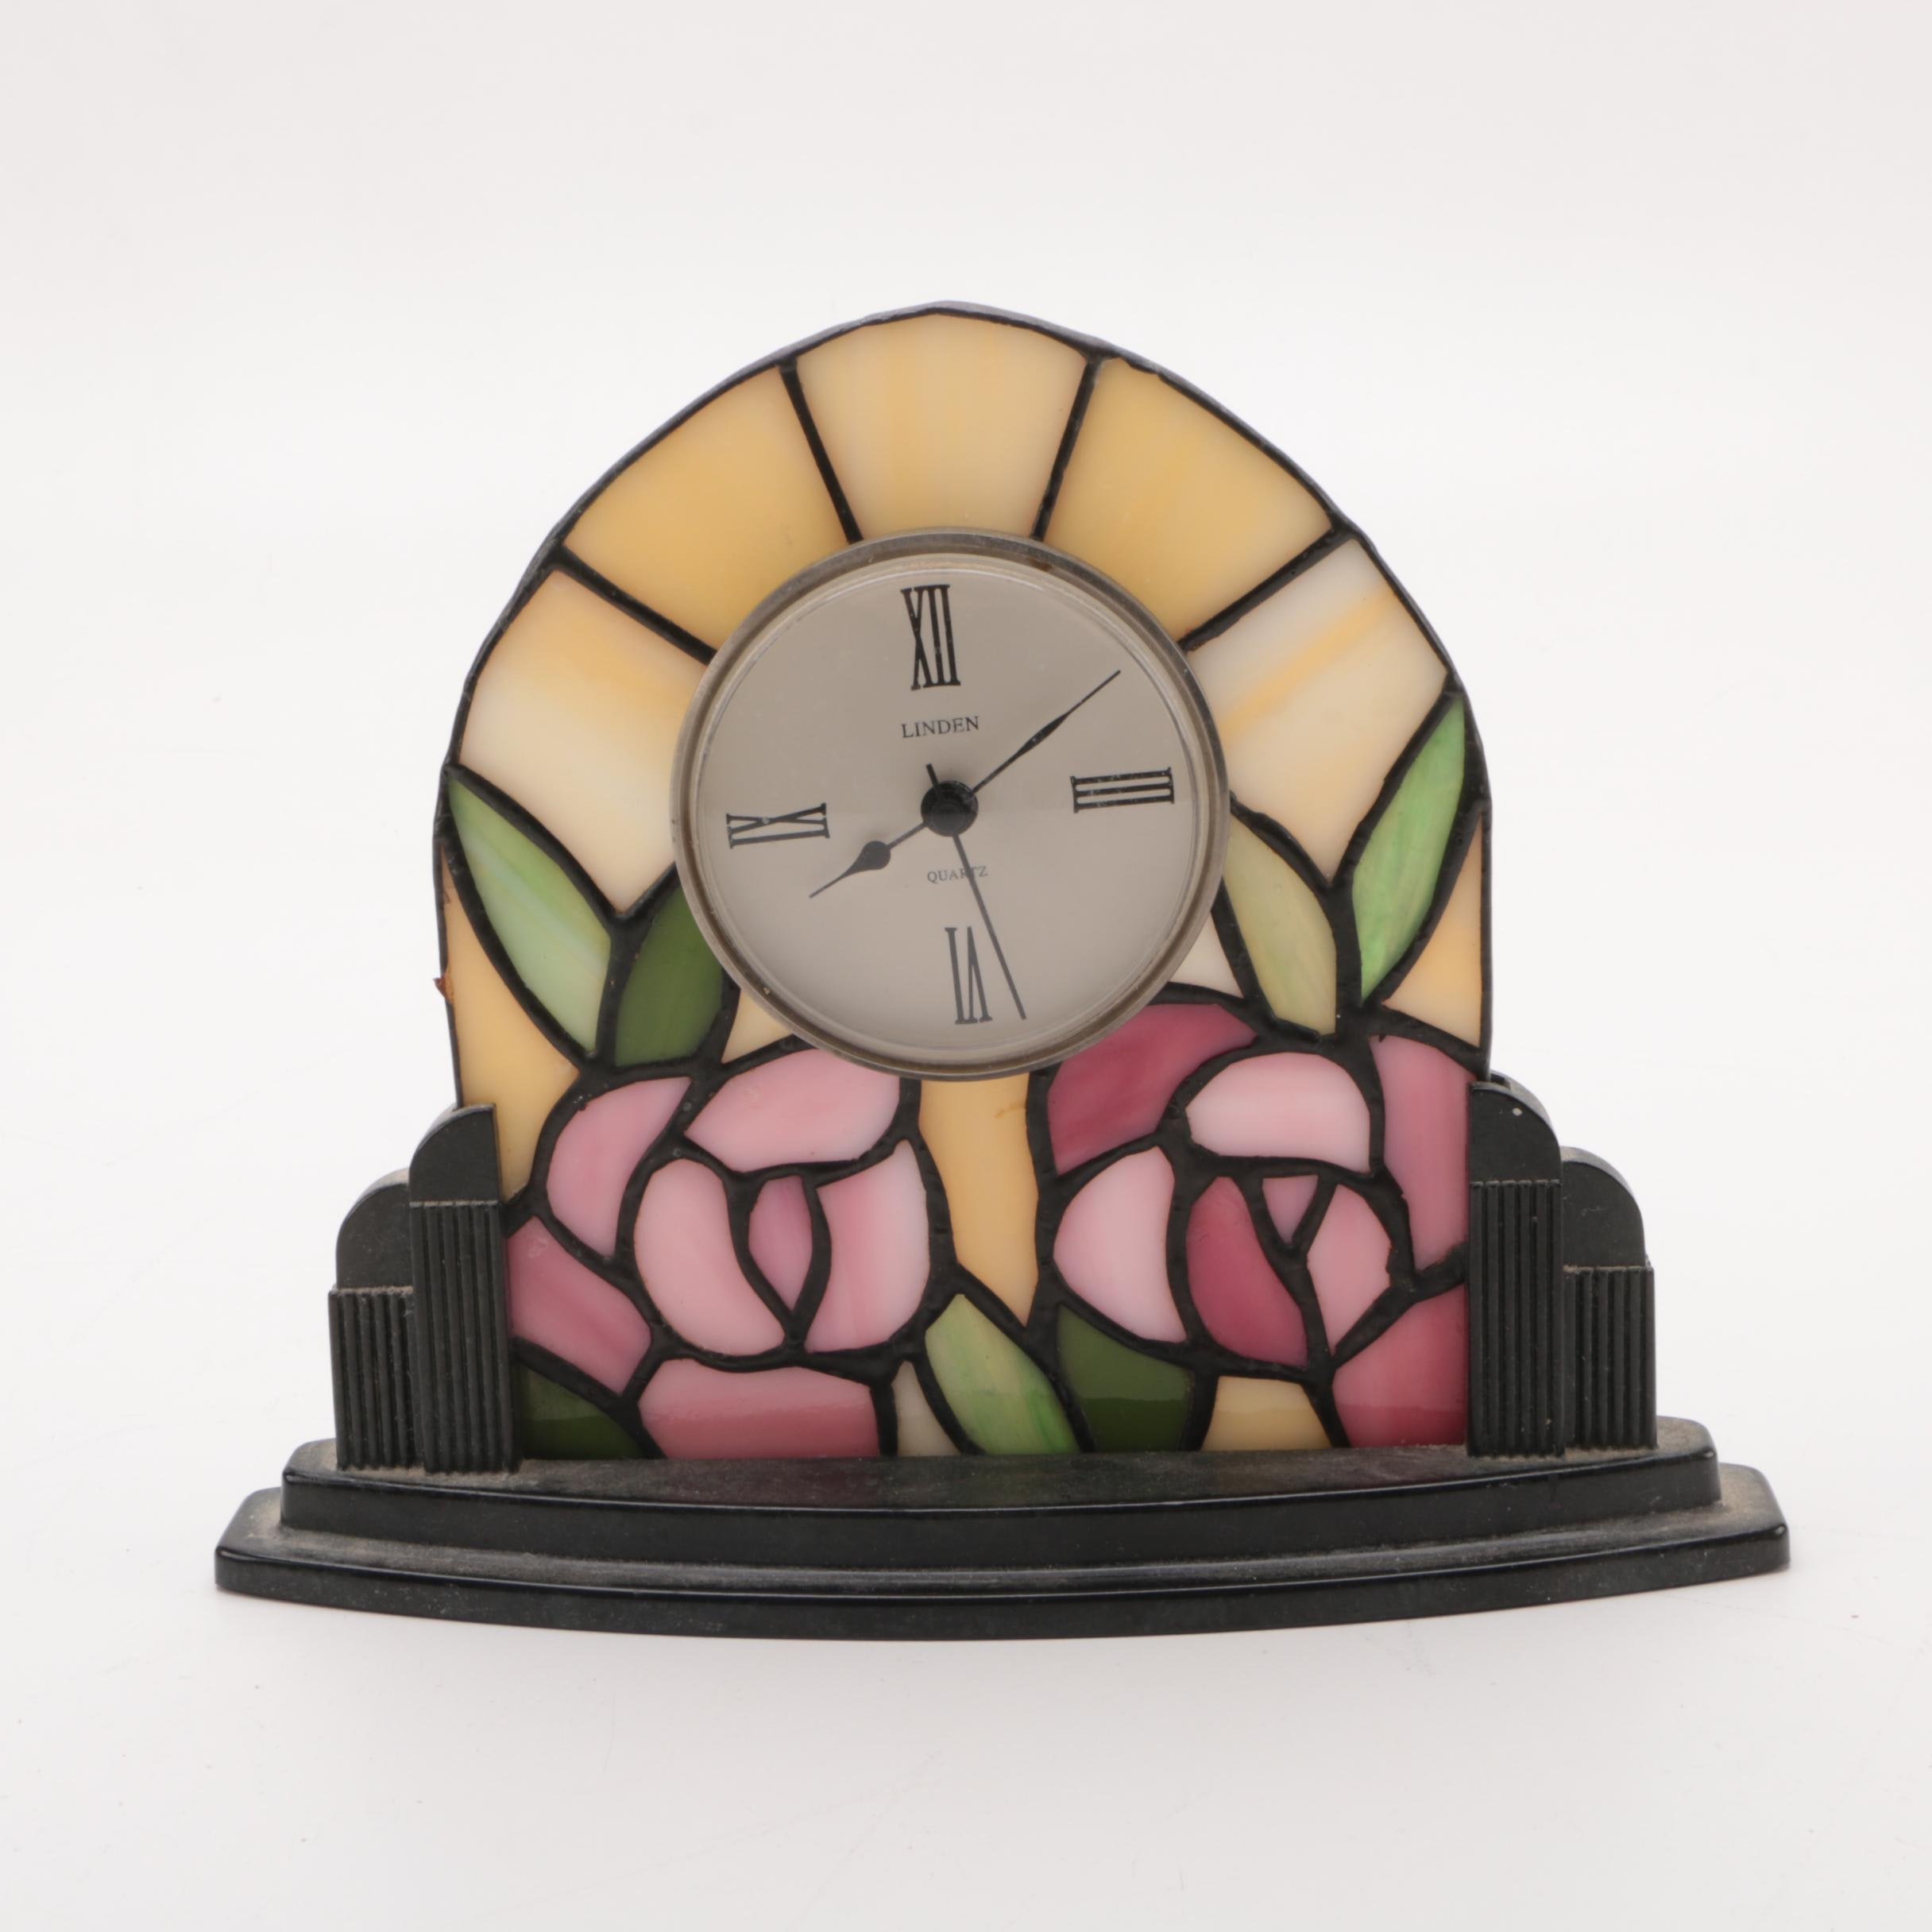 Linden Stained Glass Accented Desk Clock